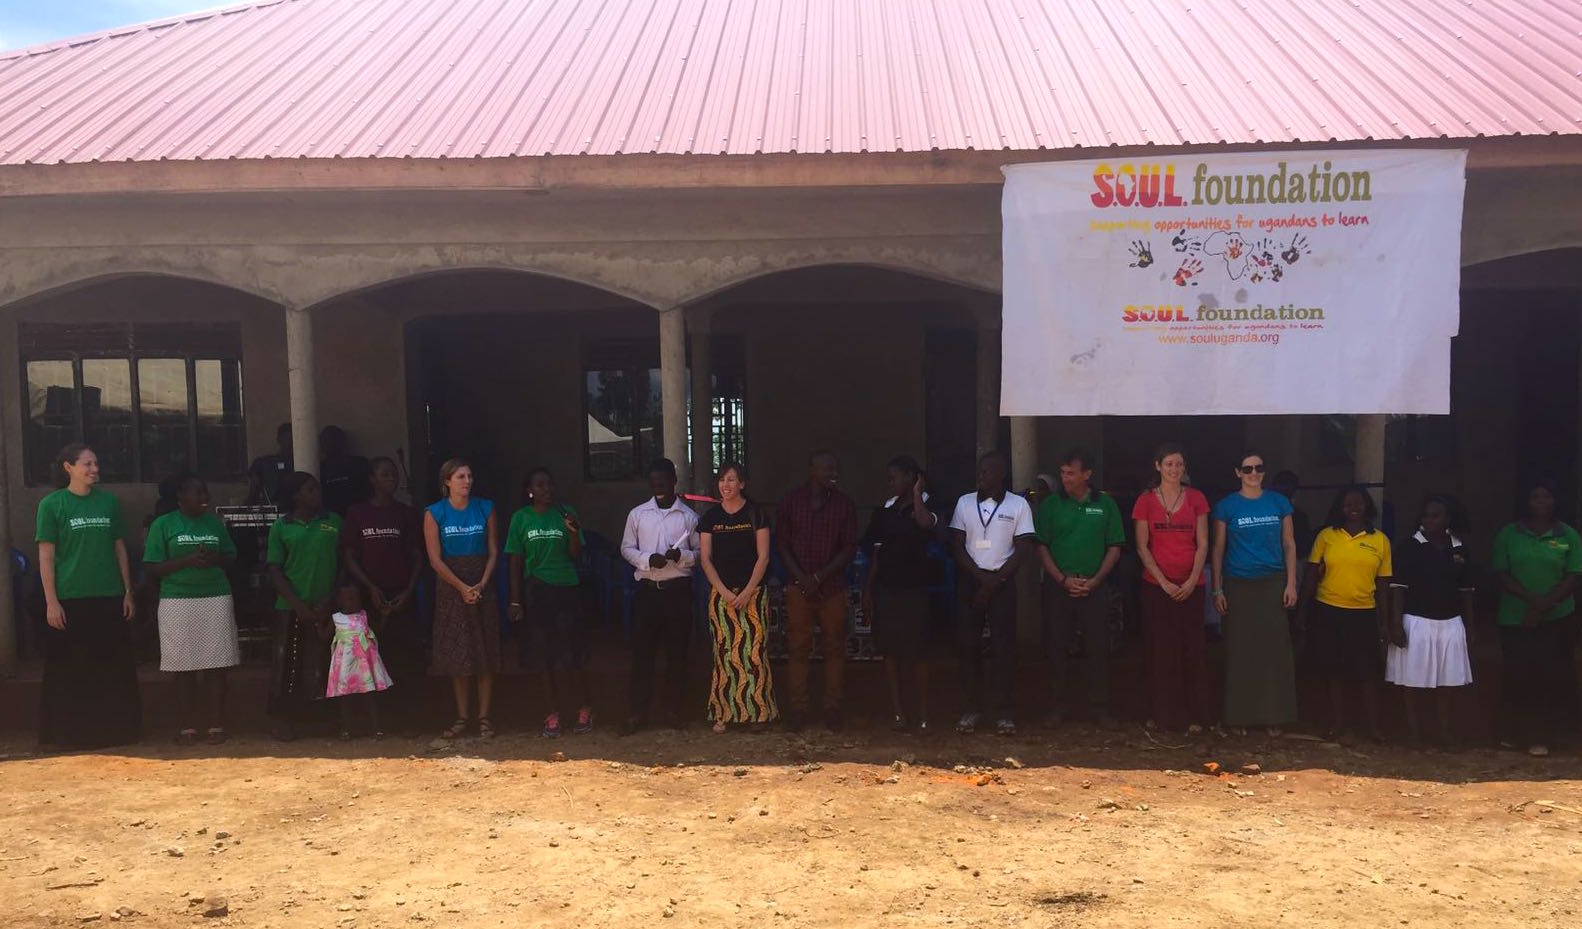 S.O.U.L. staff in front of the new Iganga community center